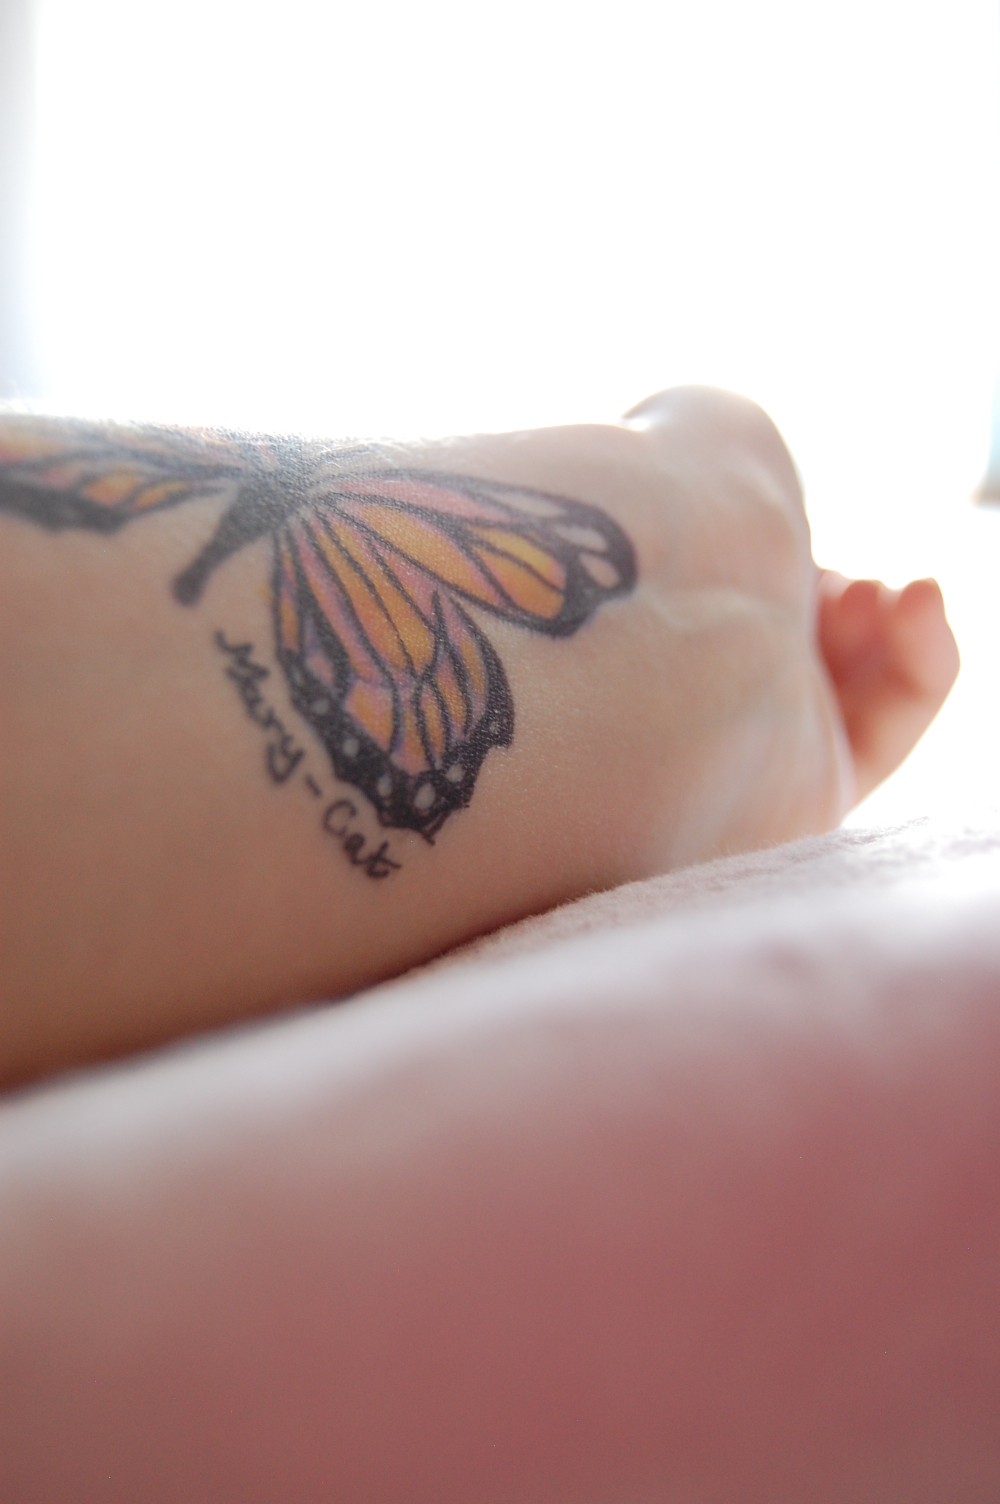 Butterfly drawing on skin against light